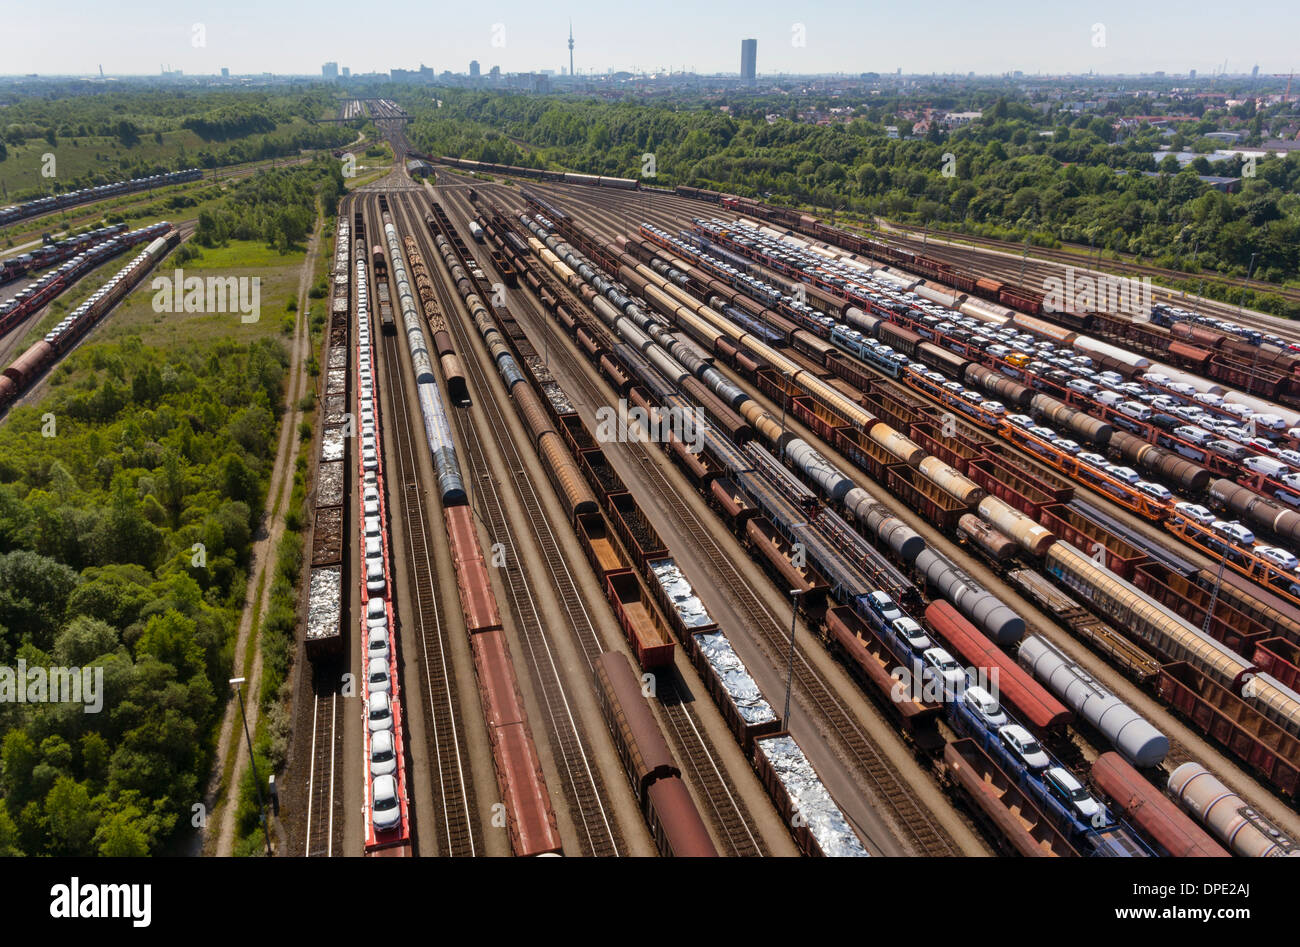 View of rail lines and freight, Munich, Bavaria, Germany - Stock Image